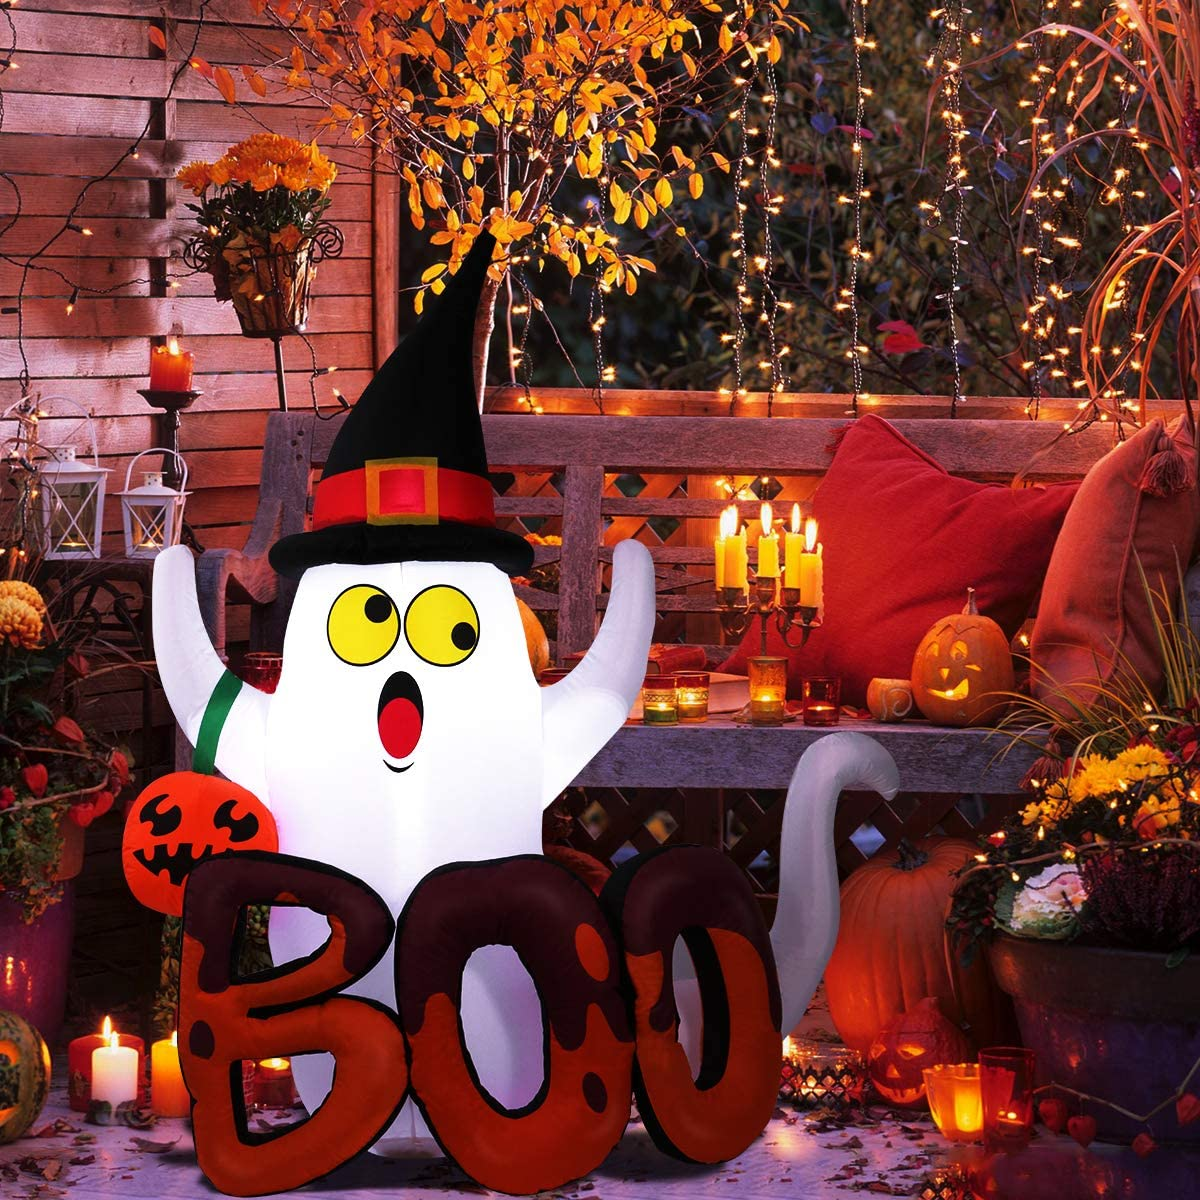 Halloween Inflatable Ghost, Blow Up Ghost with Internal LED Lights for Indoor Outdoor Yard Lawn Art Halloween Decoration